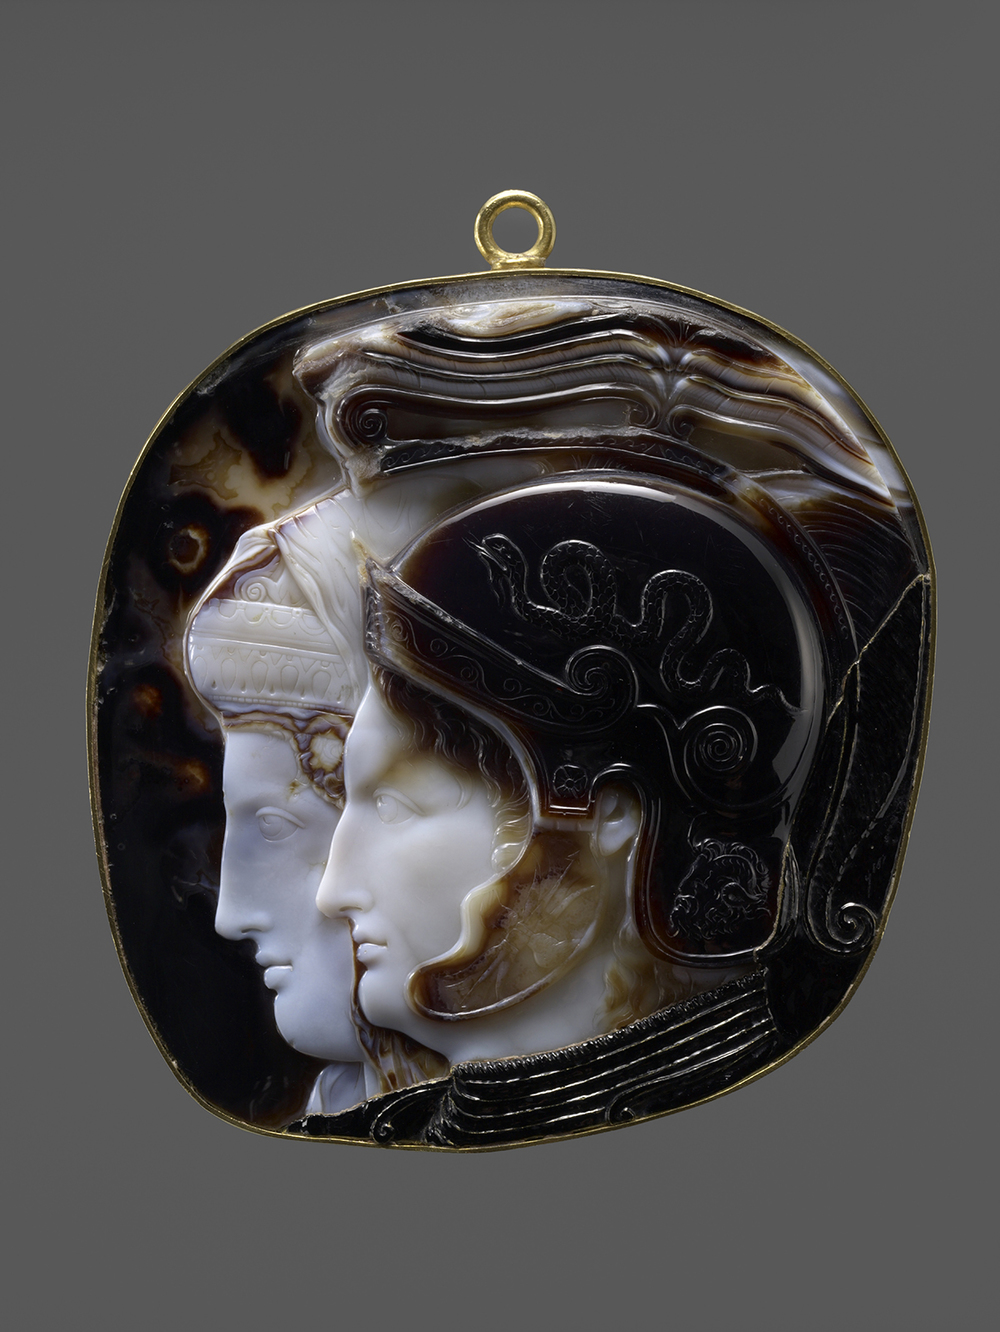 "The Vienna Cameo. Greek (Ptolemaic), Early Hellenistic period, 278-270/69 B.C.E. Ten–layered onyx (Indian sardonyx). H. 41/2 in. (11.5 cm), W. 4 in. (10.2 cm). Antikensammlung, Kunsthistorisches Museum, Vienna (IXa 81). This cameo portrays Ptolemy II Philadelphus in the foreground wearing an Attic helmet whose cheek guard depicts a thunderbolt, an attribute of Zeus. The snake on the dome is the descendant of the Hellenized Egyptian cobra seen on the pharaohs' own war helmets. The neck guard displays a portrait of the Egyptian god Ammon. In the background is the sister wife Arsinoe II, wearing a hood-like crown beneath a veil. These two ""sibling gods"" would have been worshipped in their lifetimes at the shrine of Alexander in the Ptolemaic Kingdom governed in Alexandria."